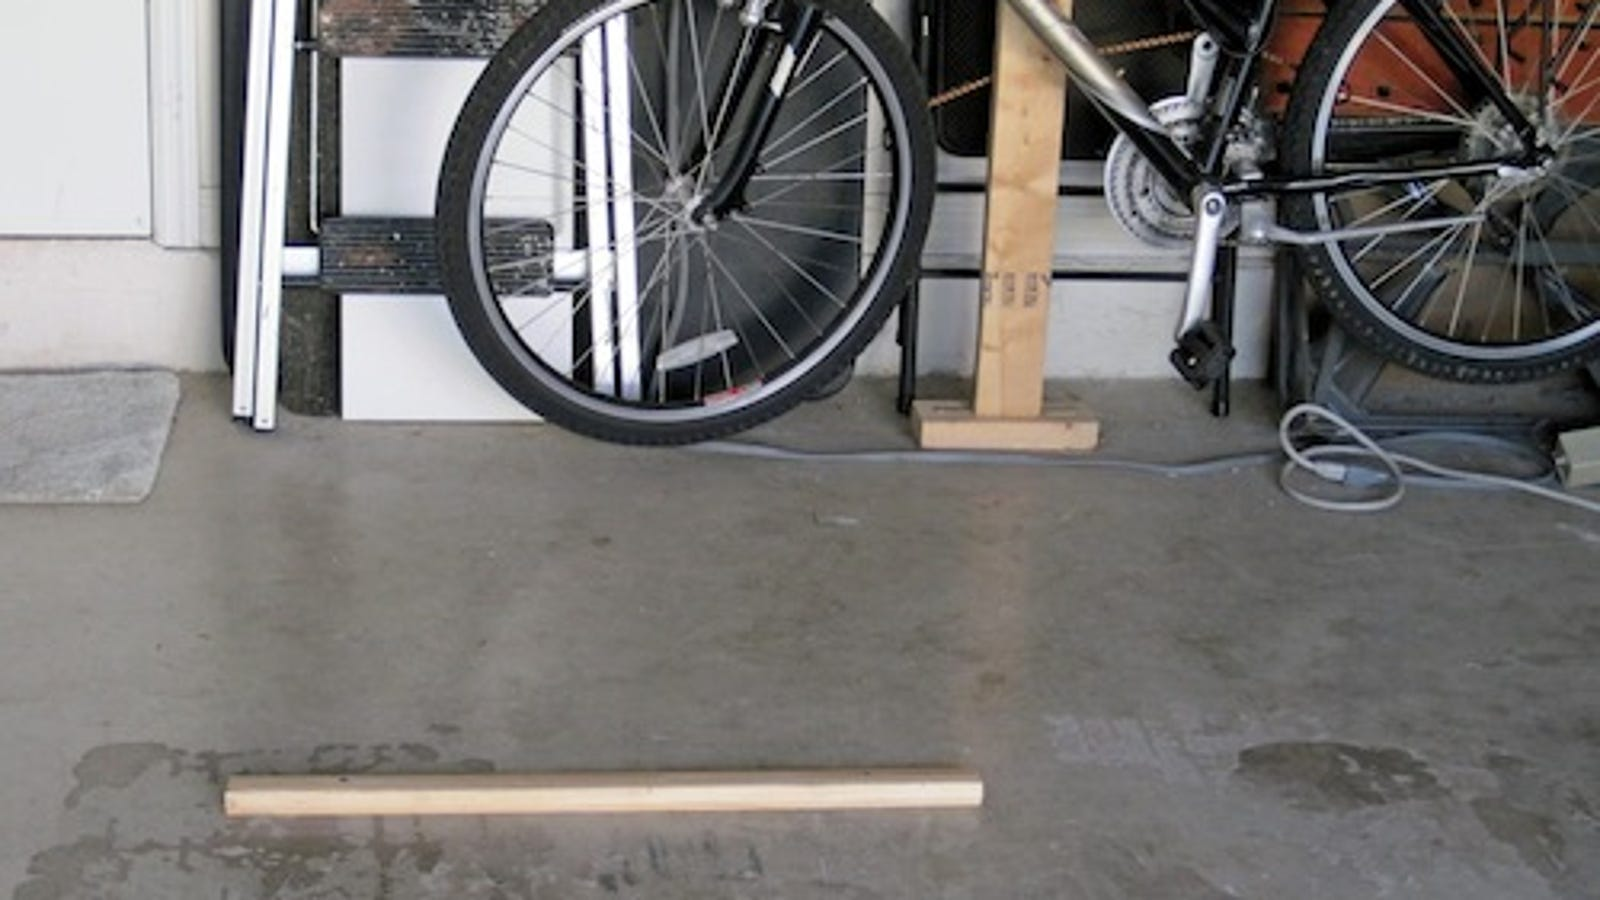 Diy garage parking bumper keeps you from knocking over the bicycles solutioingenieria Choice Image